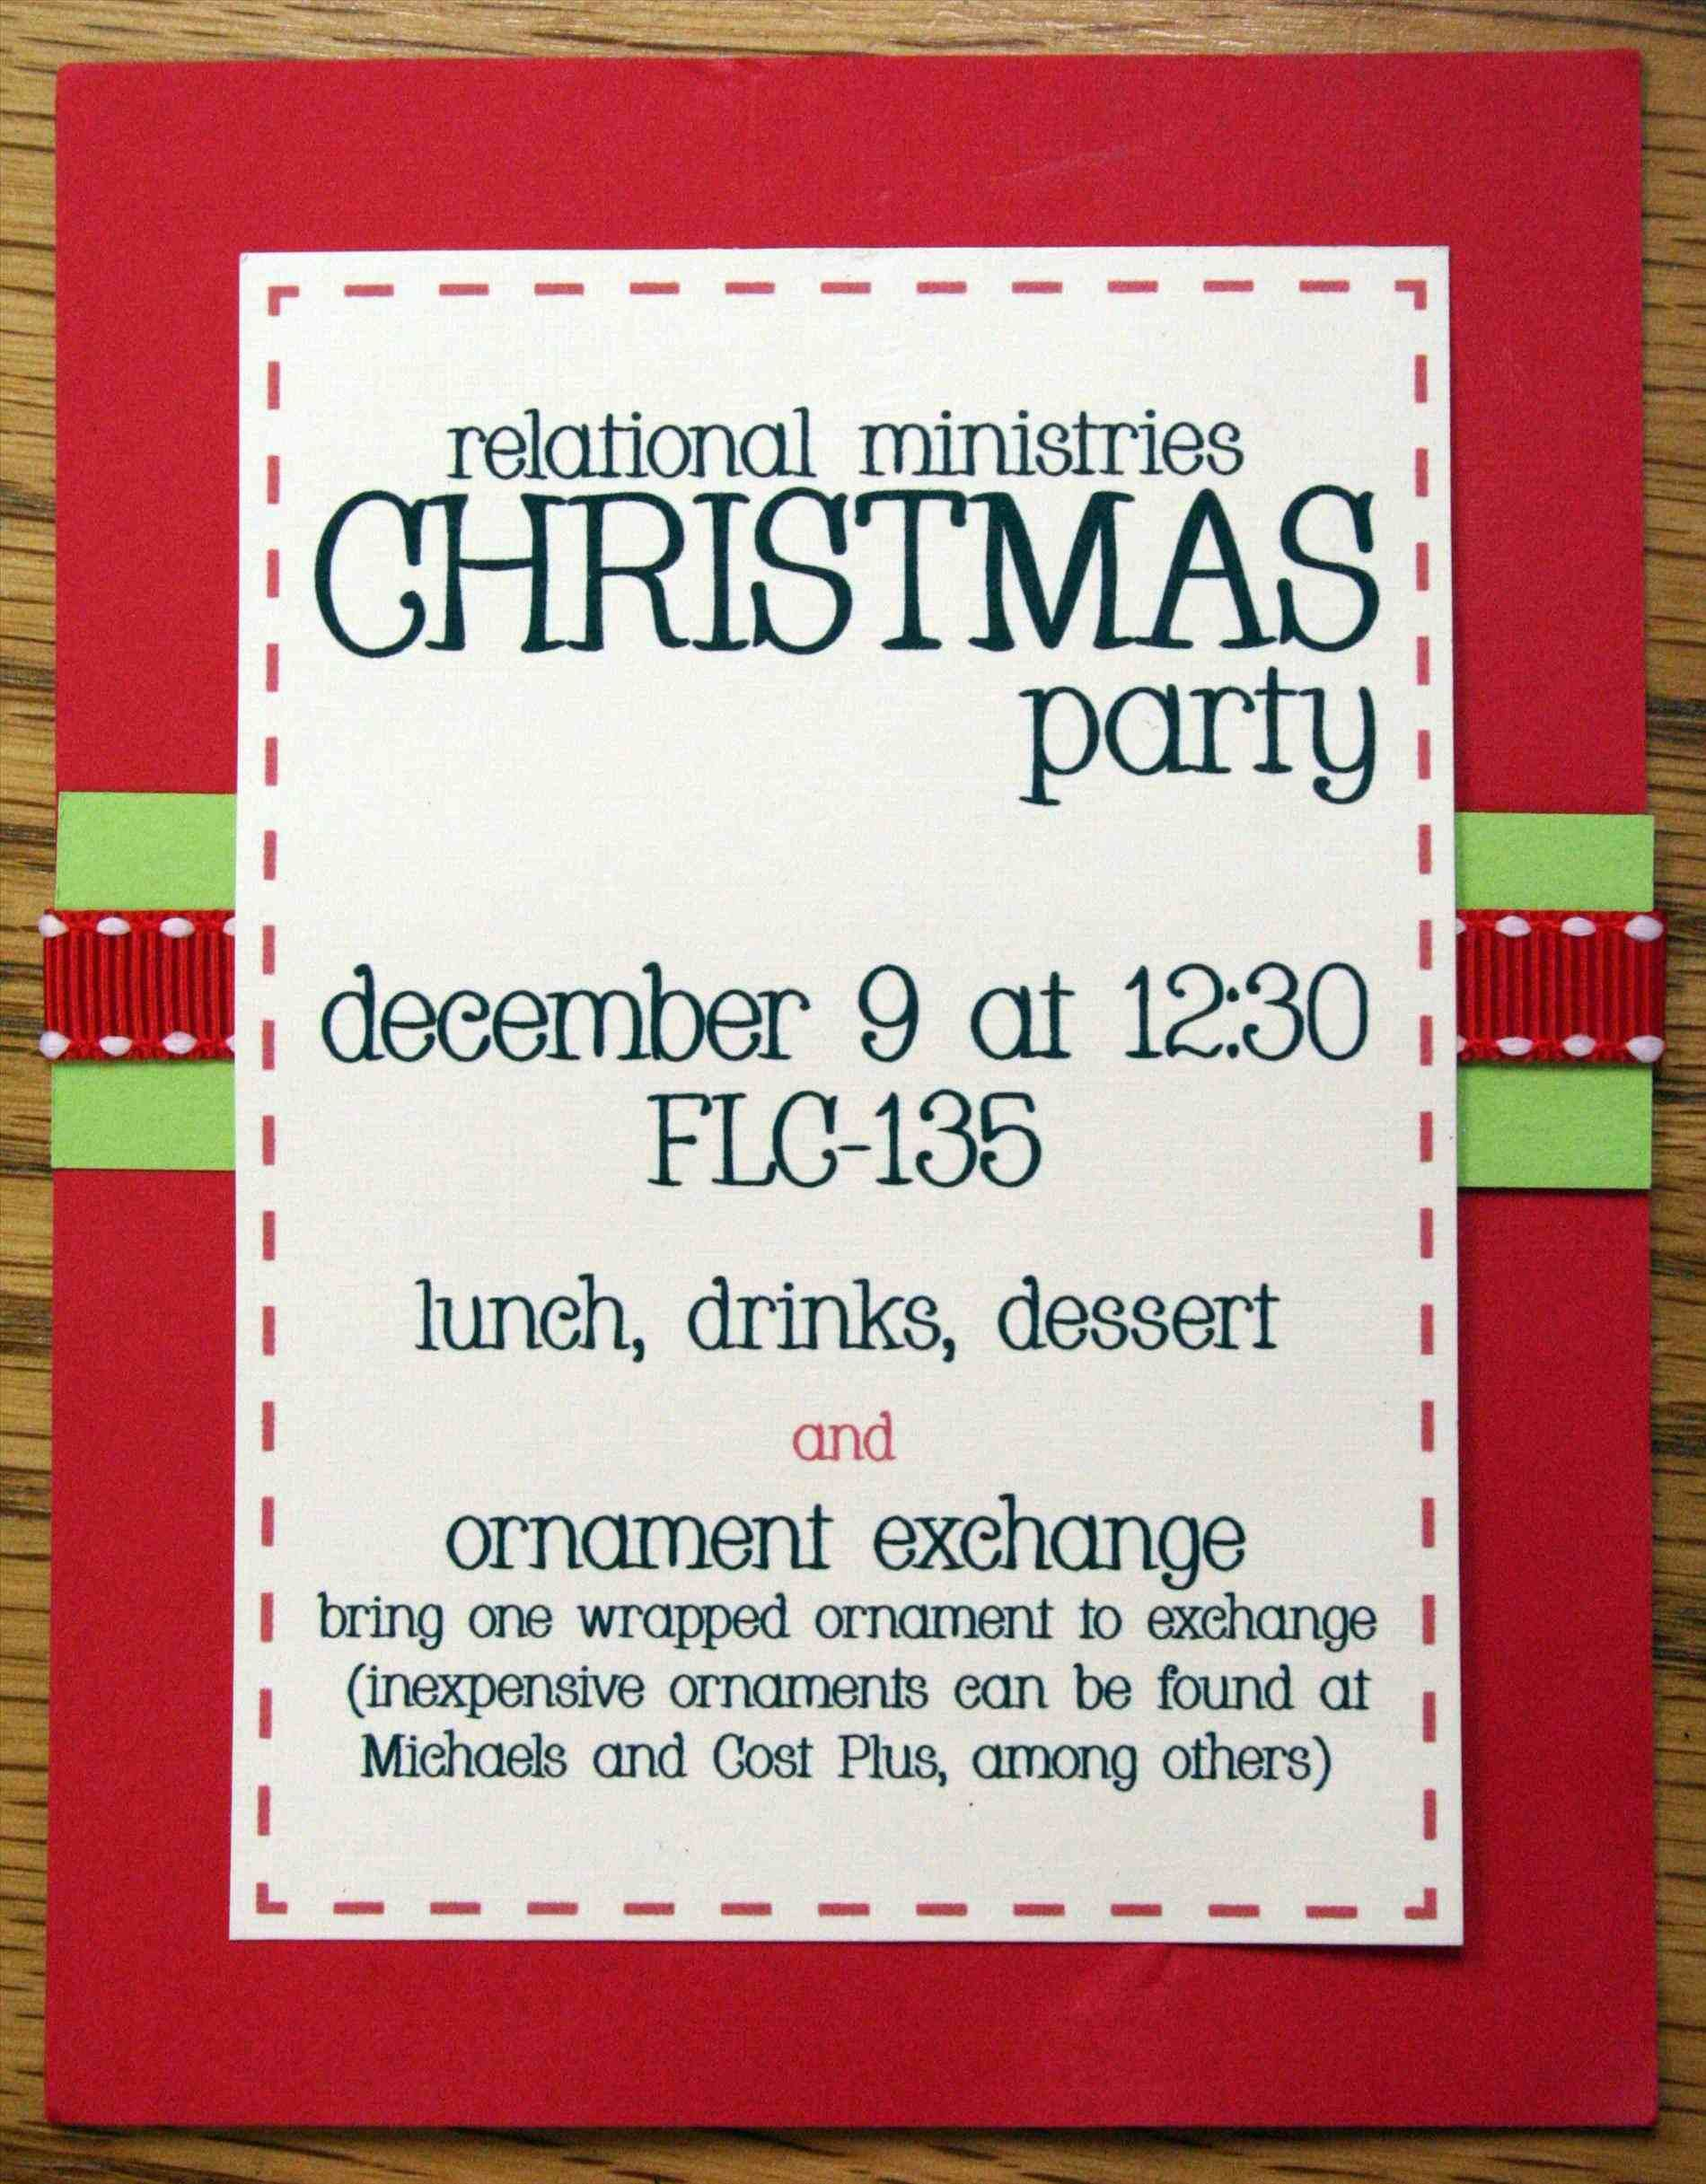 Christmas Office Party Invitation Templates Free